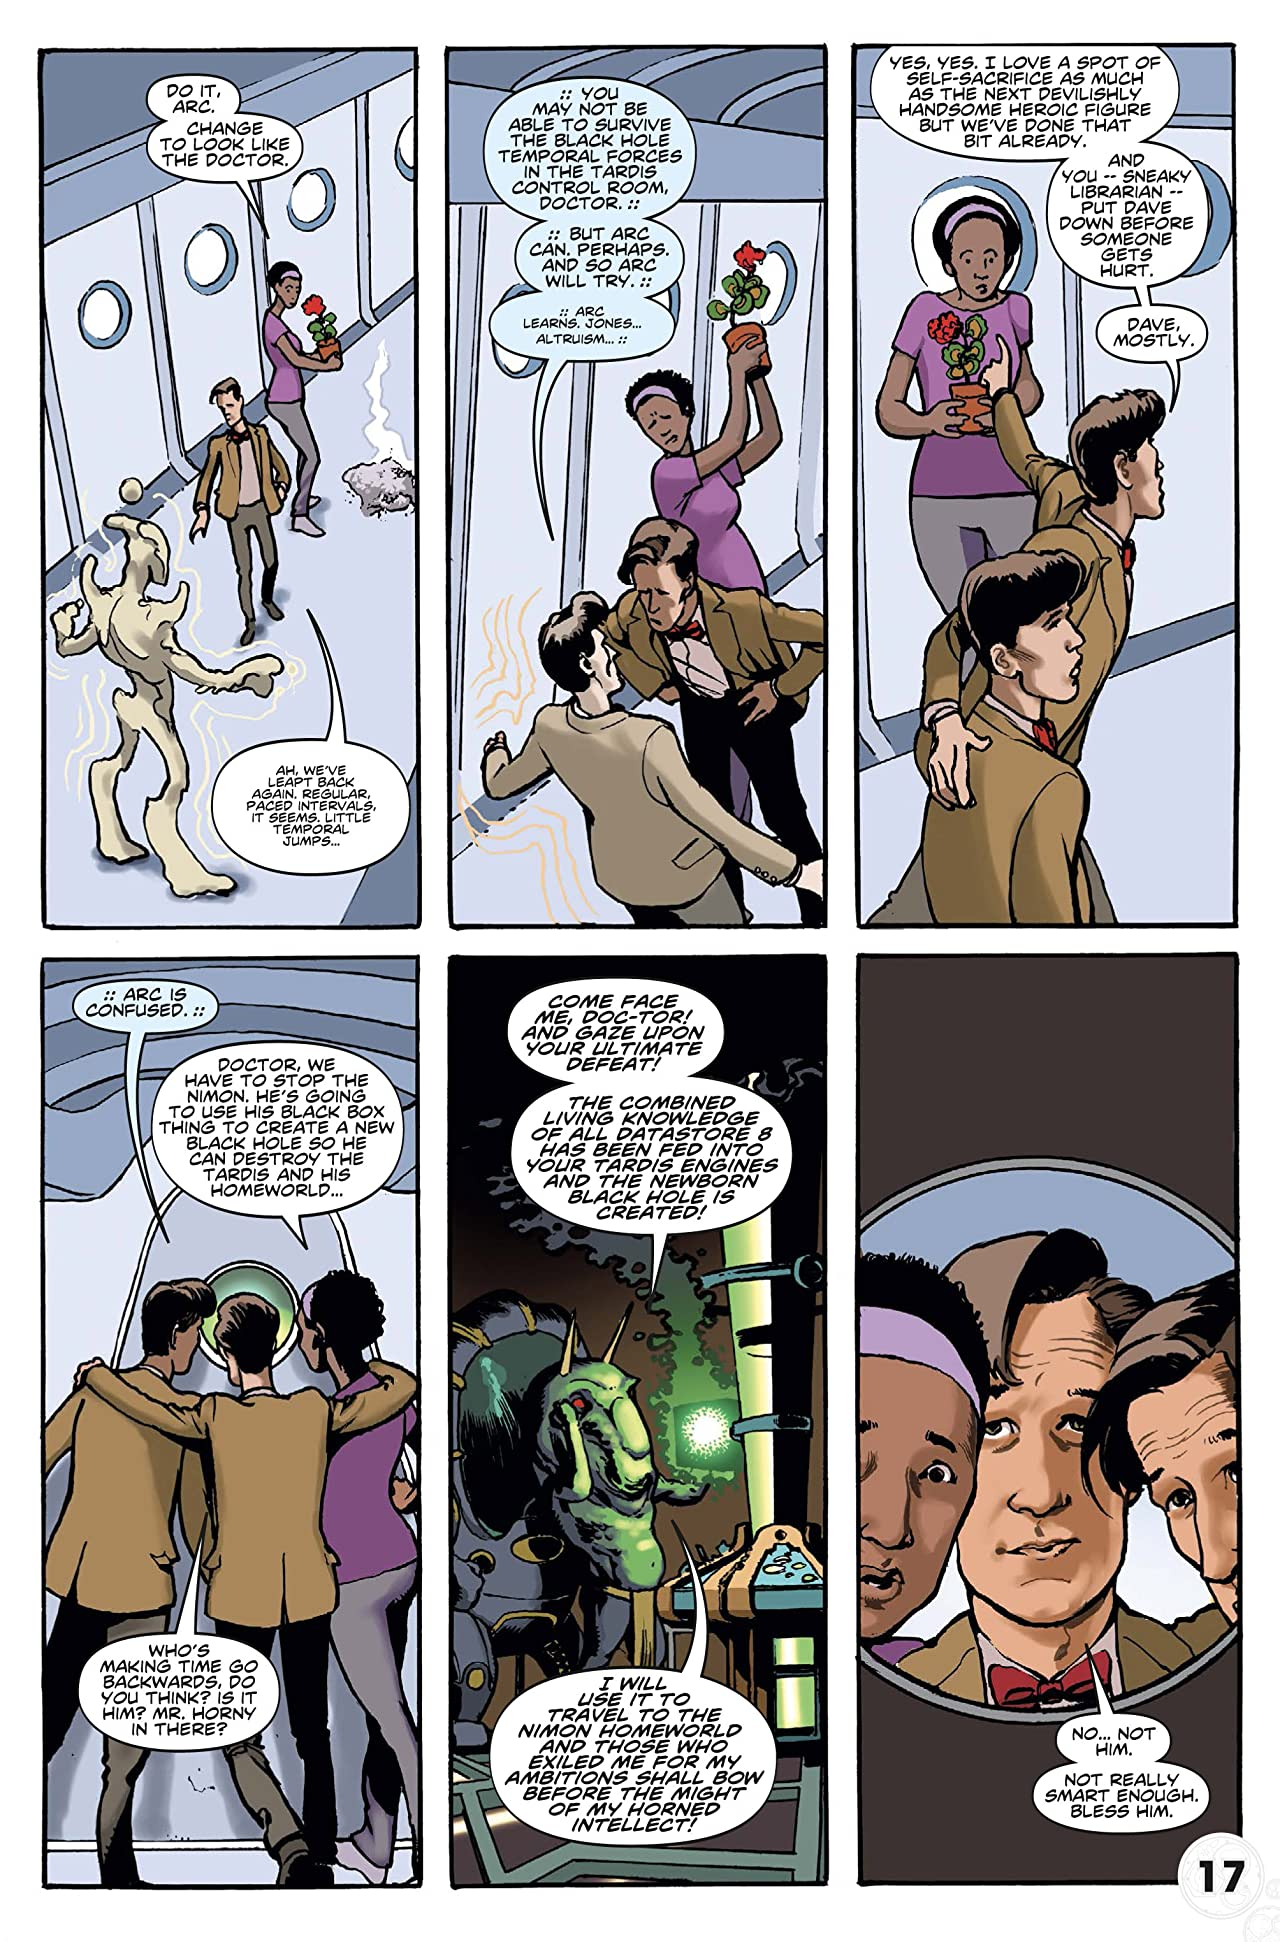 Doctor Who: The Eleventh Doctor #6